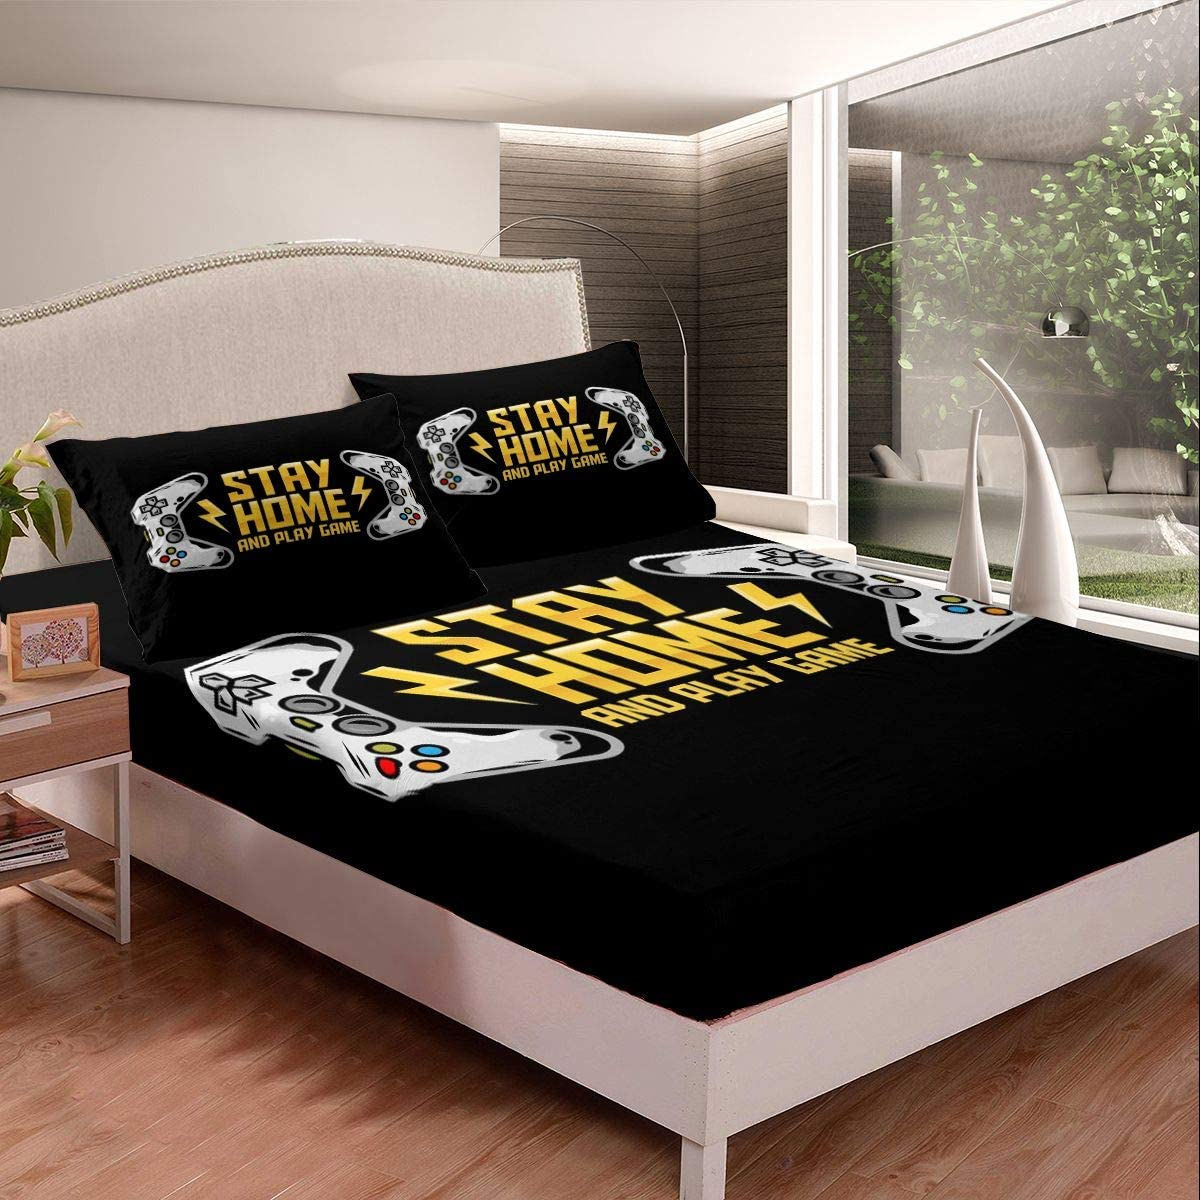 Gamepad Fitted Sheet Teens Price reduction Gamer Bedding trust Shee Bed Video Game Set